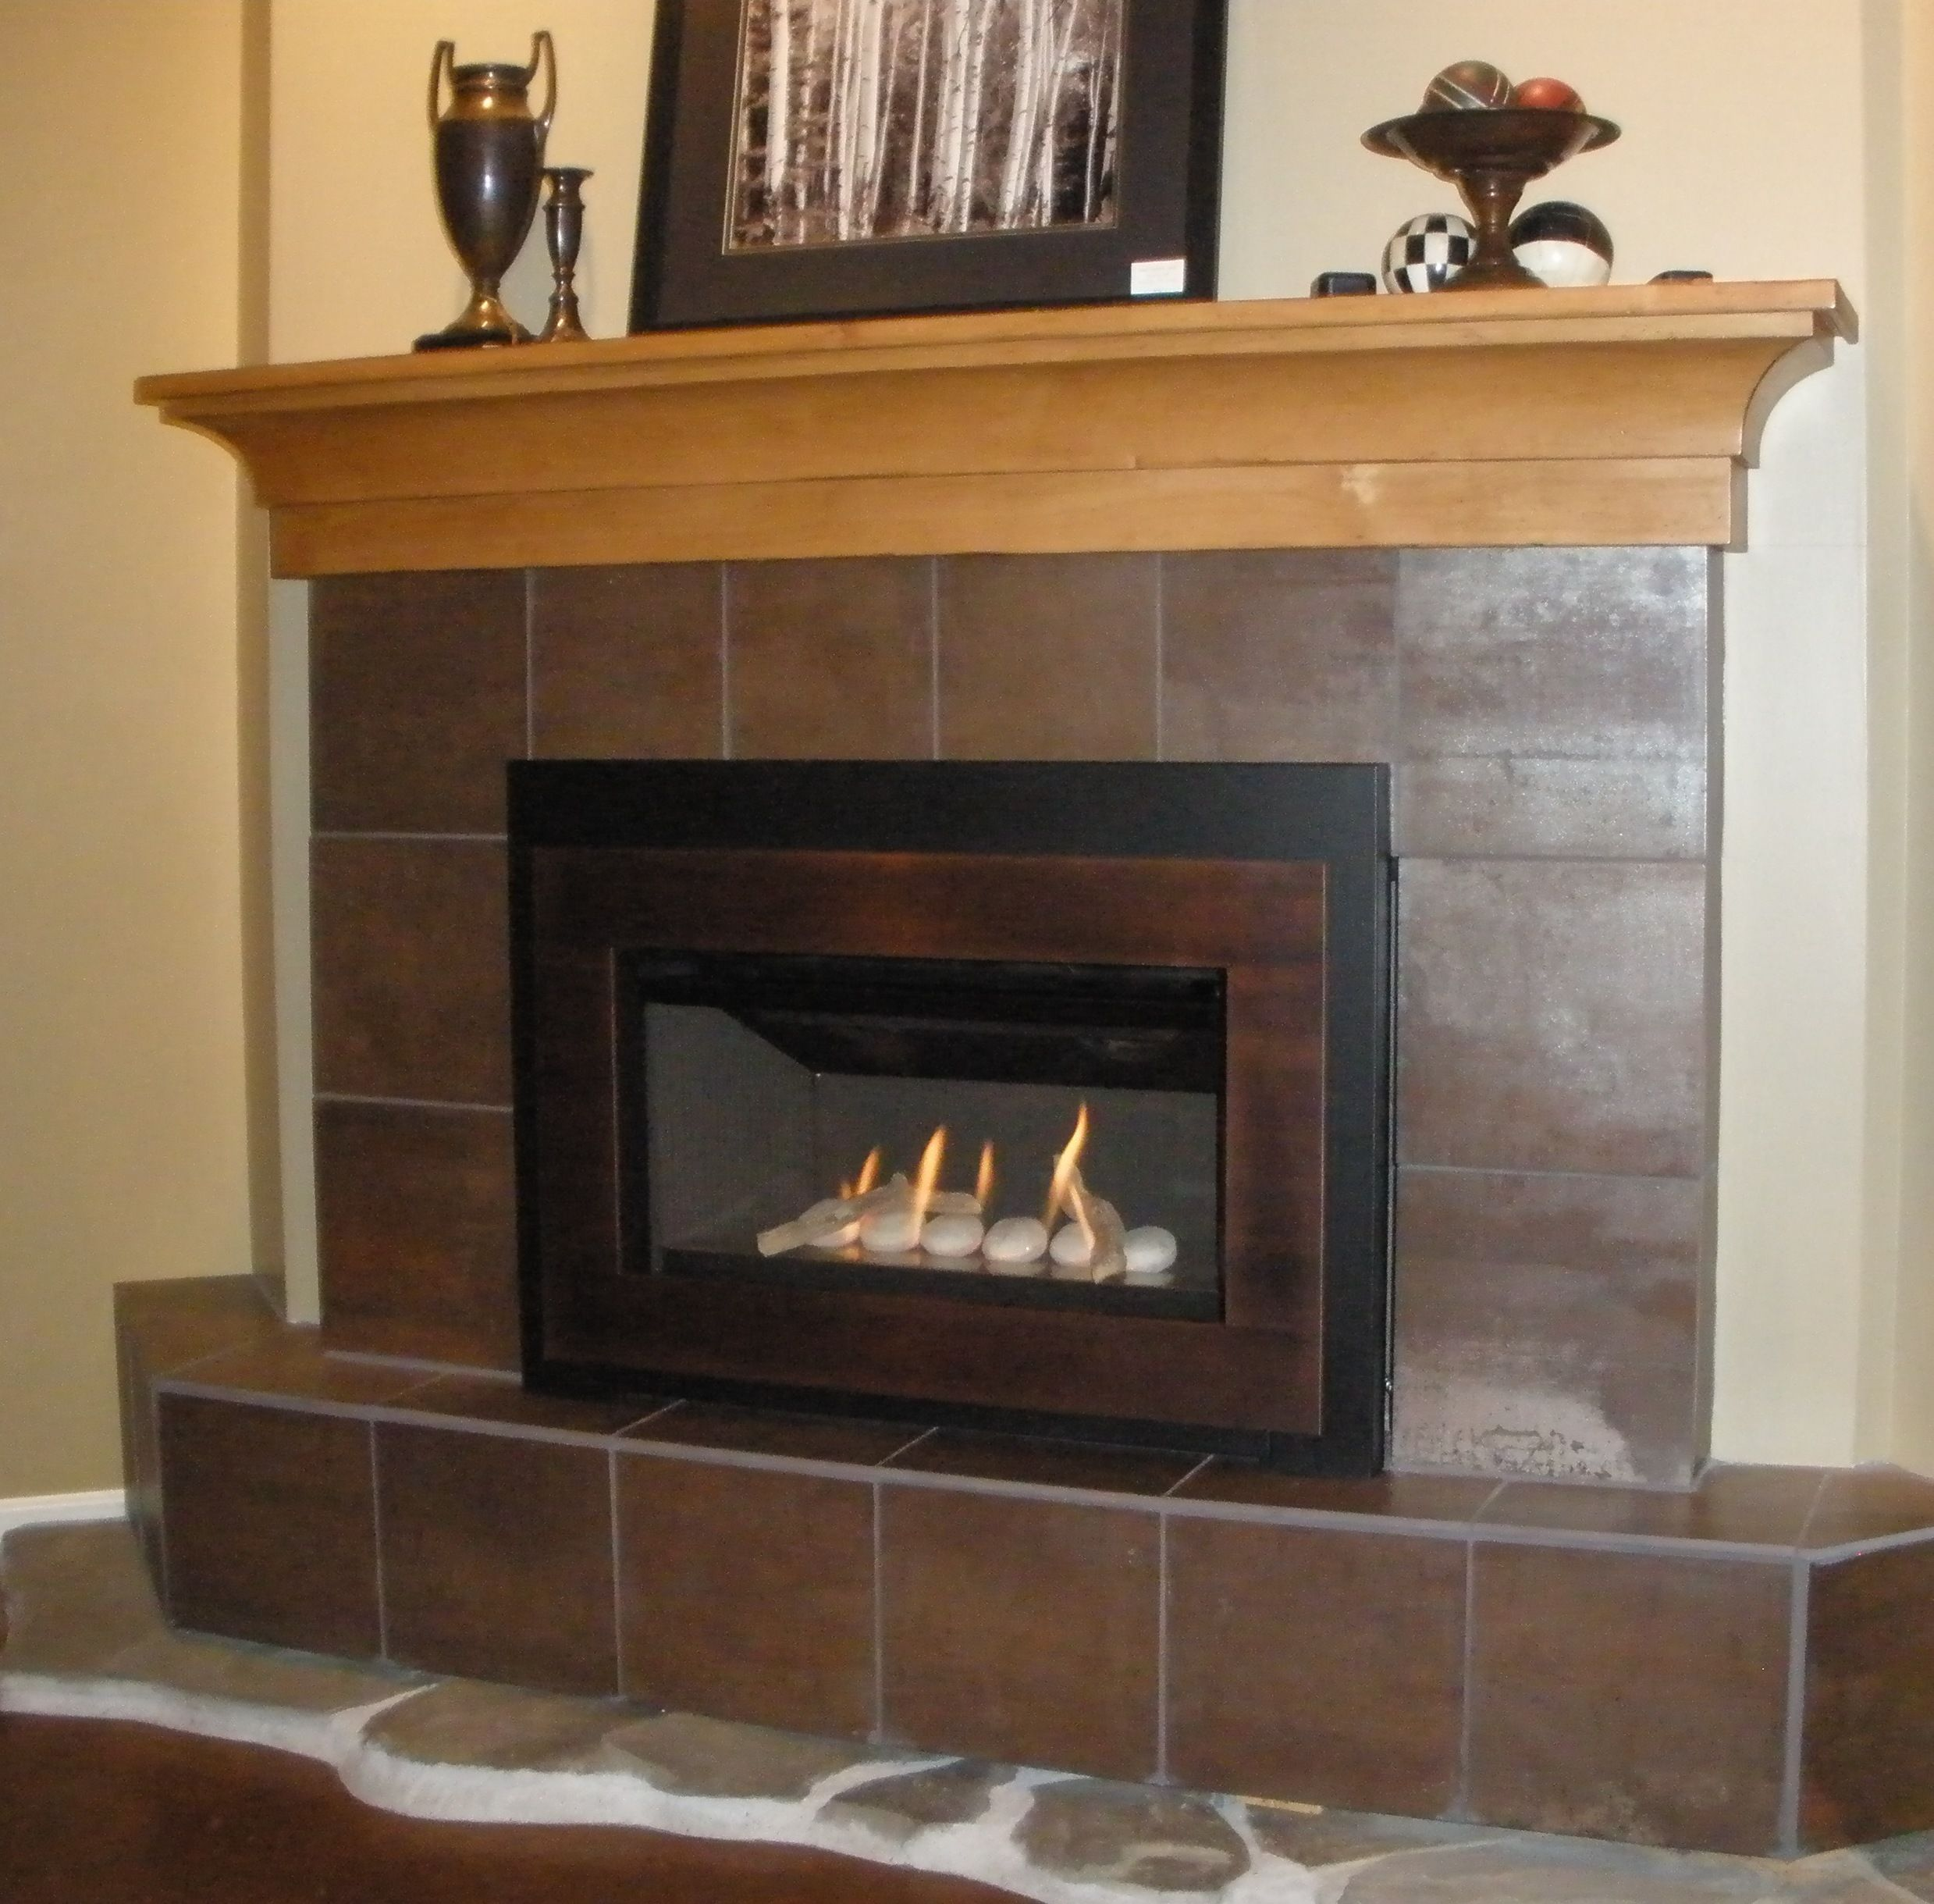 Corner Gas Fireplace Vented Lovely Pin On Valor Radiant Gas Fireplaces Midwest Dealer